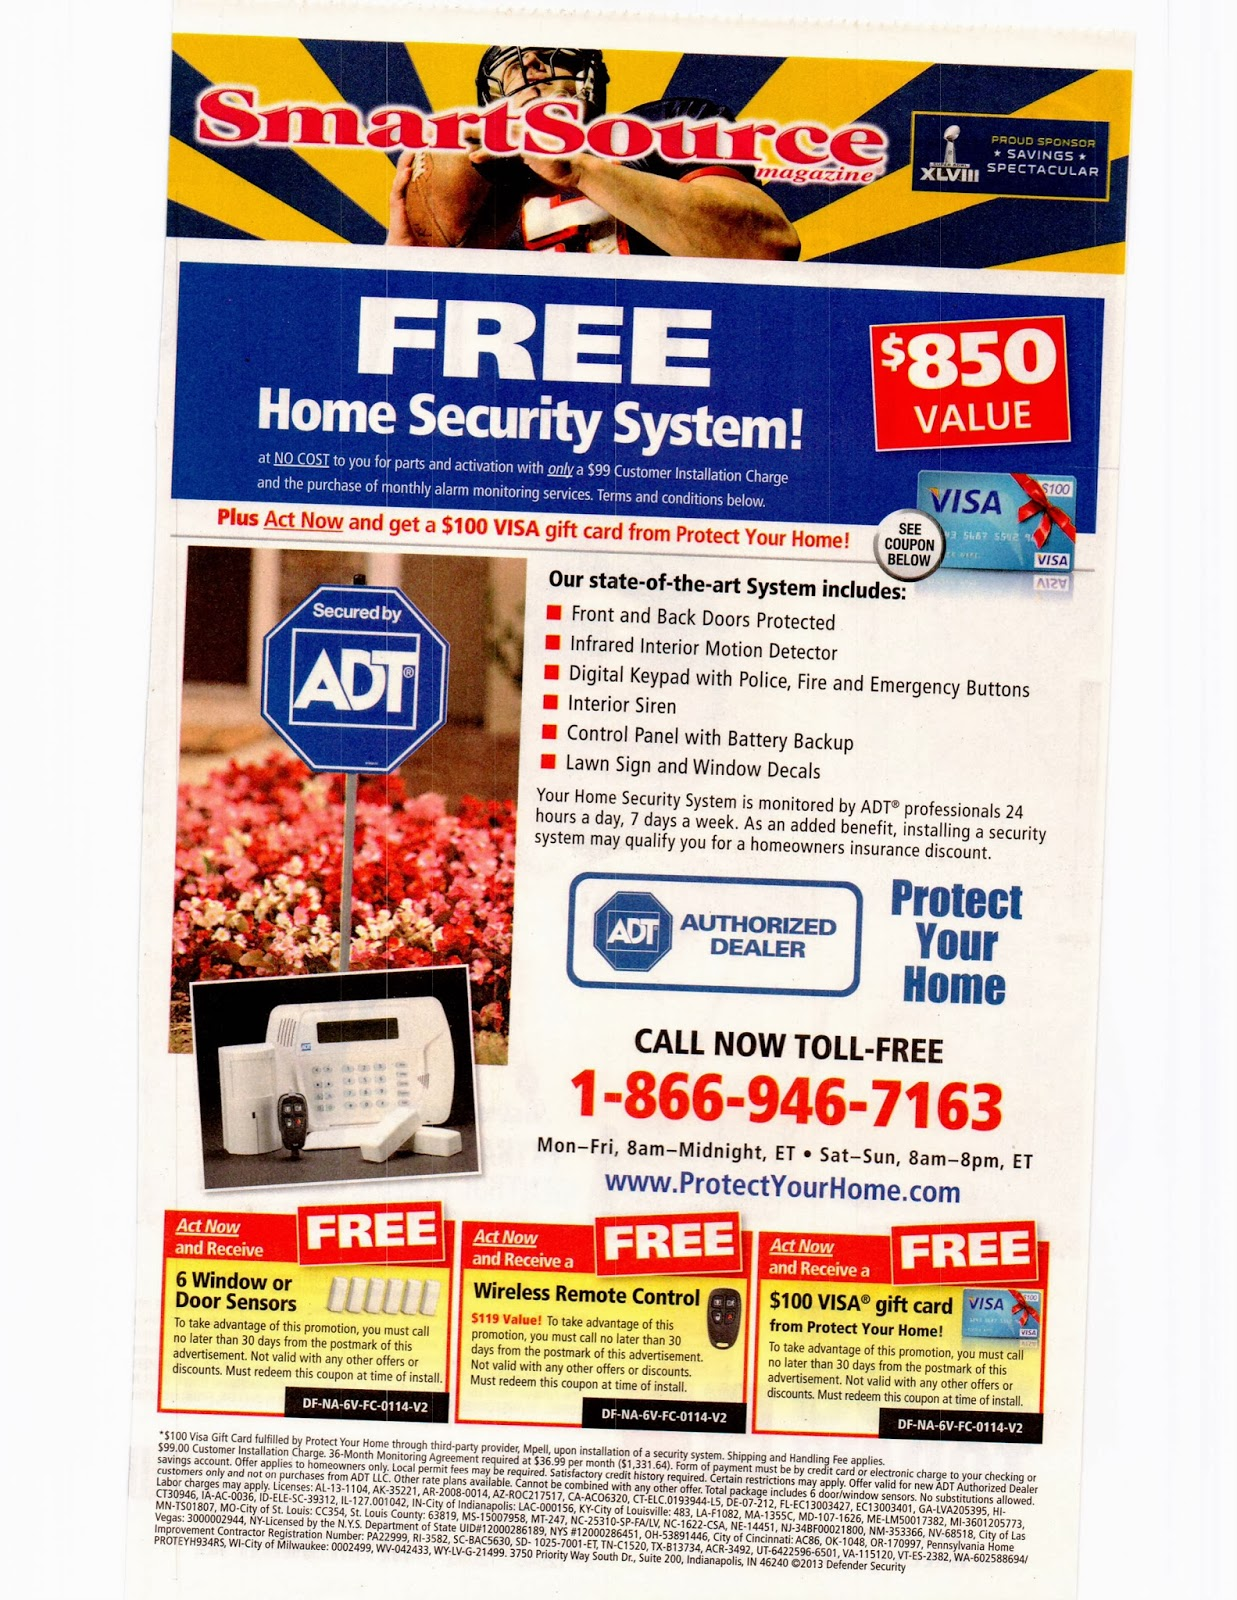 But first–the 411 on Sunday newspaper coupon inserts: